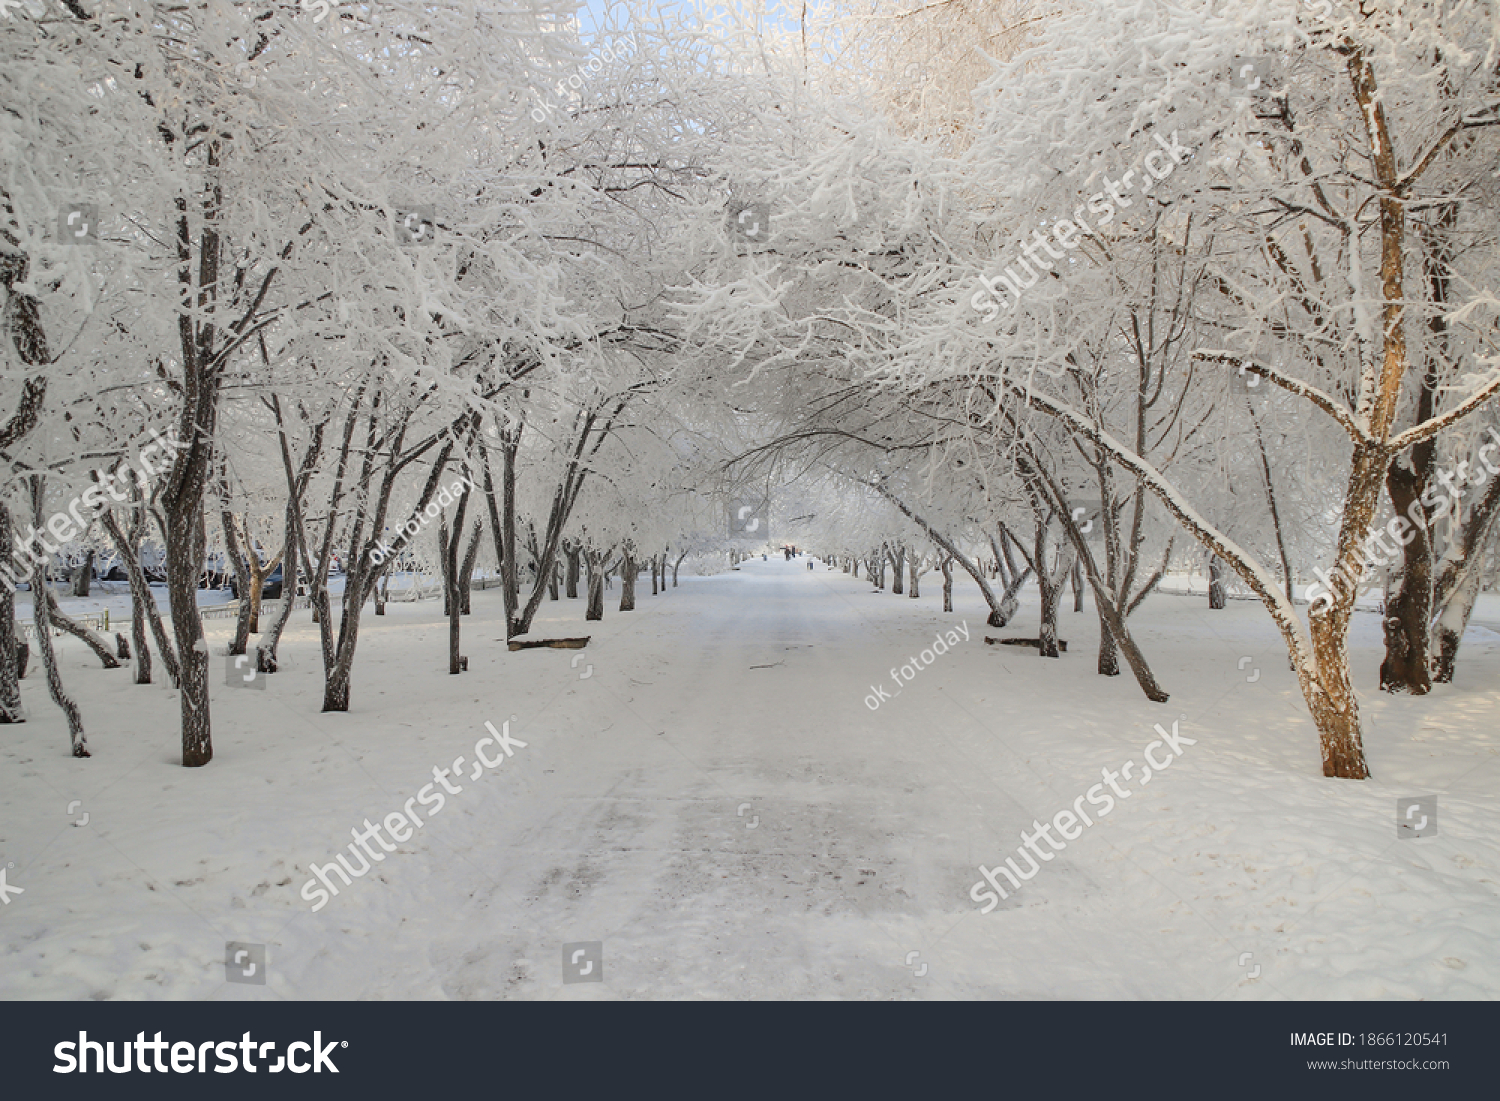 Winter plot: White trees densely covered with hoarfrost, bending branches with an arch above the alley